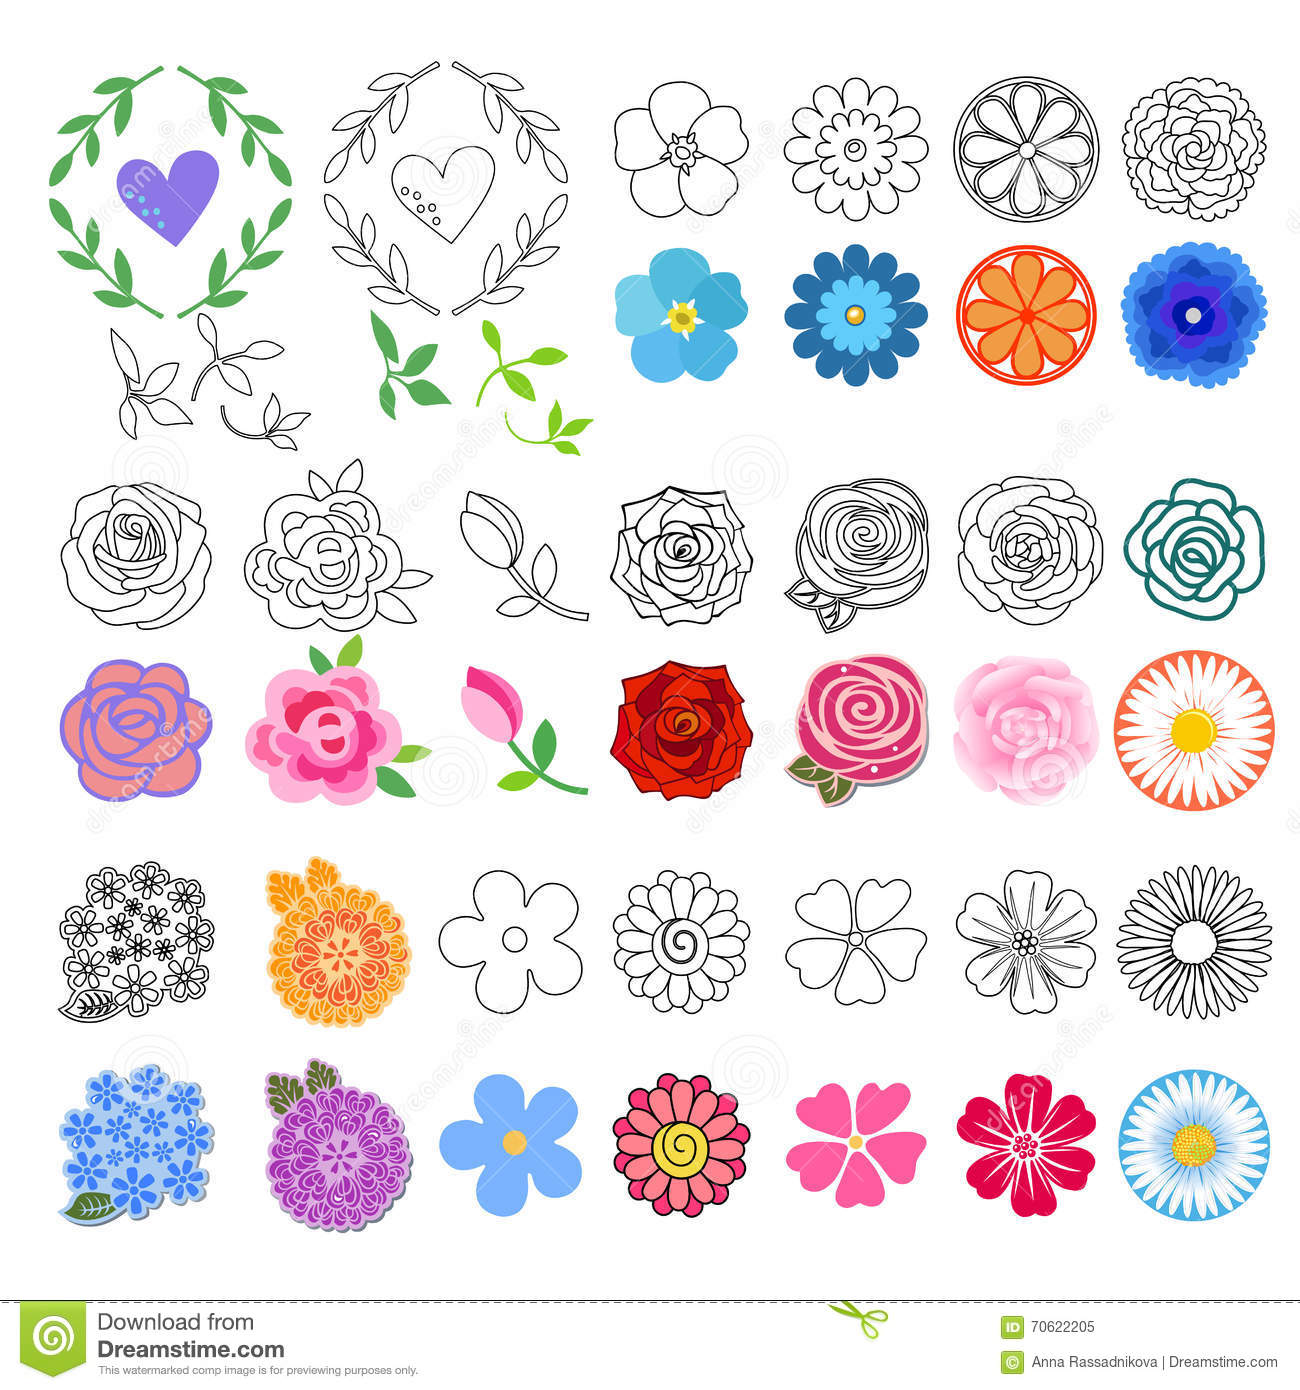 flowers set different styles drawn stock vector illustration of book pattern 70622205